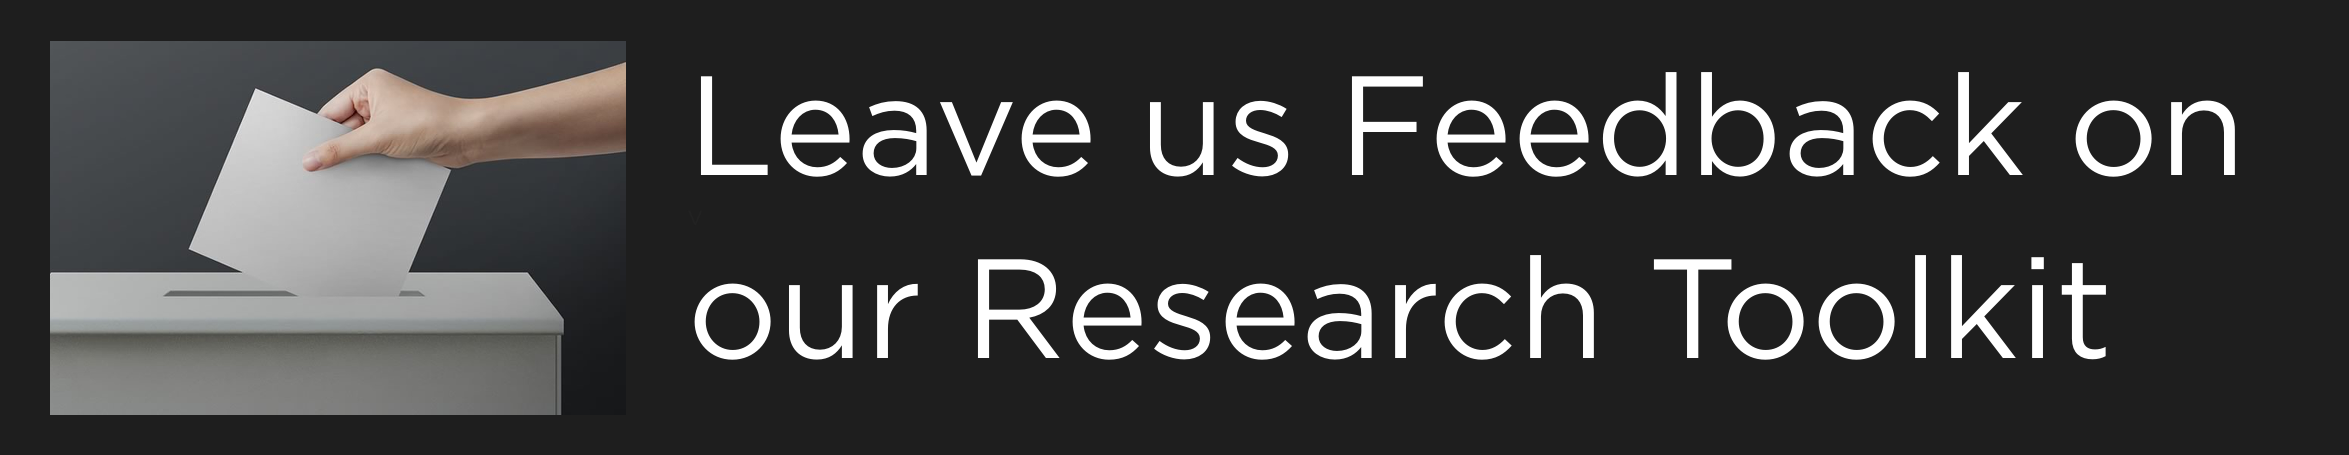 Button - 'Leave us Feedback on our Research Toolkit'